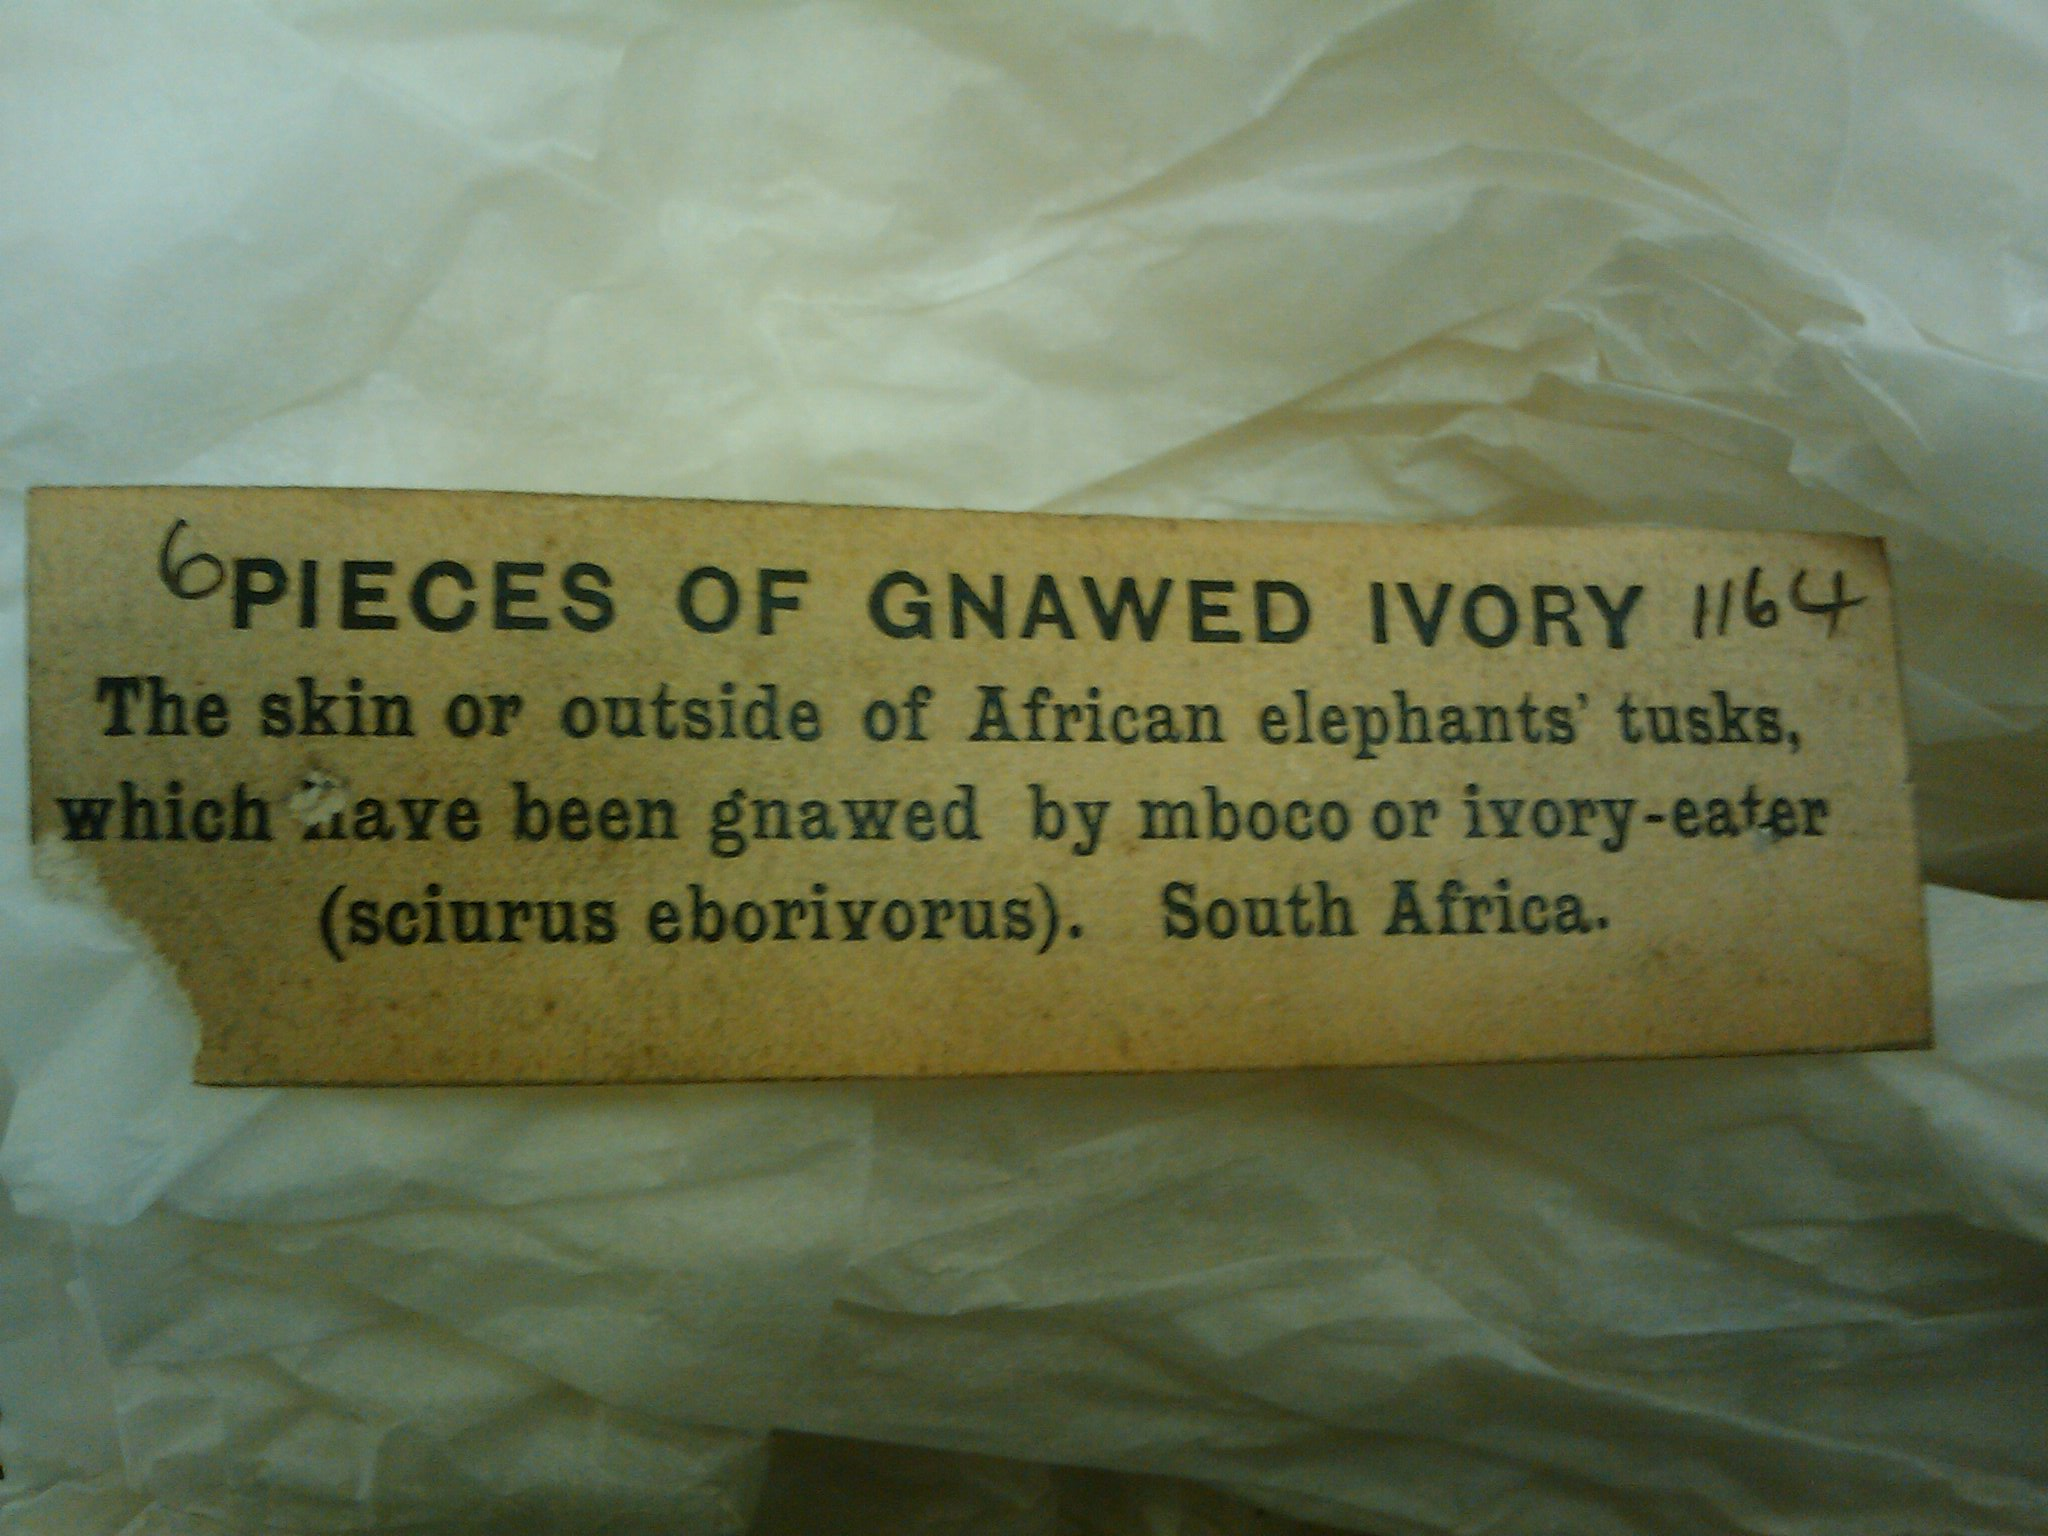 Piece of gnawed ivory label